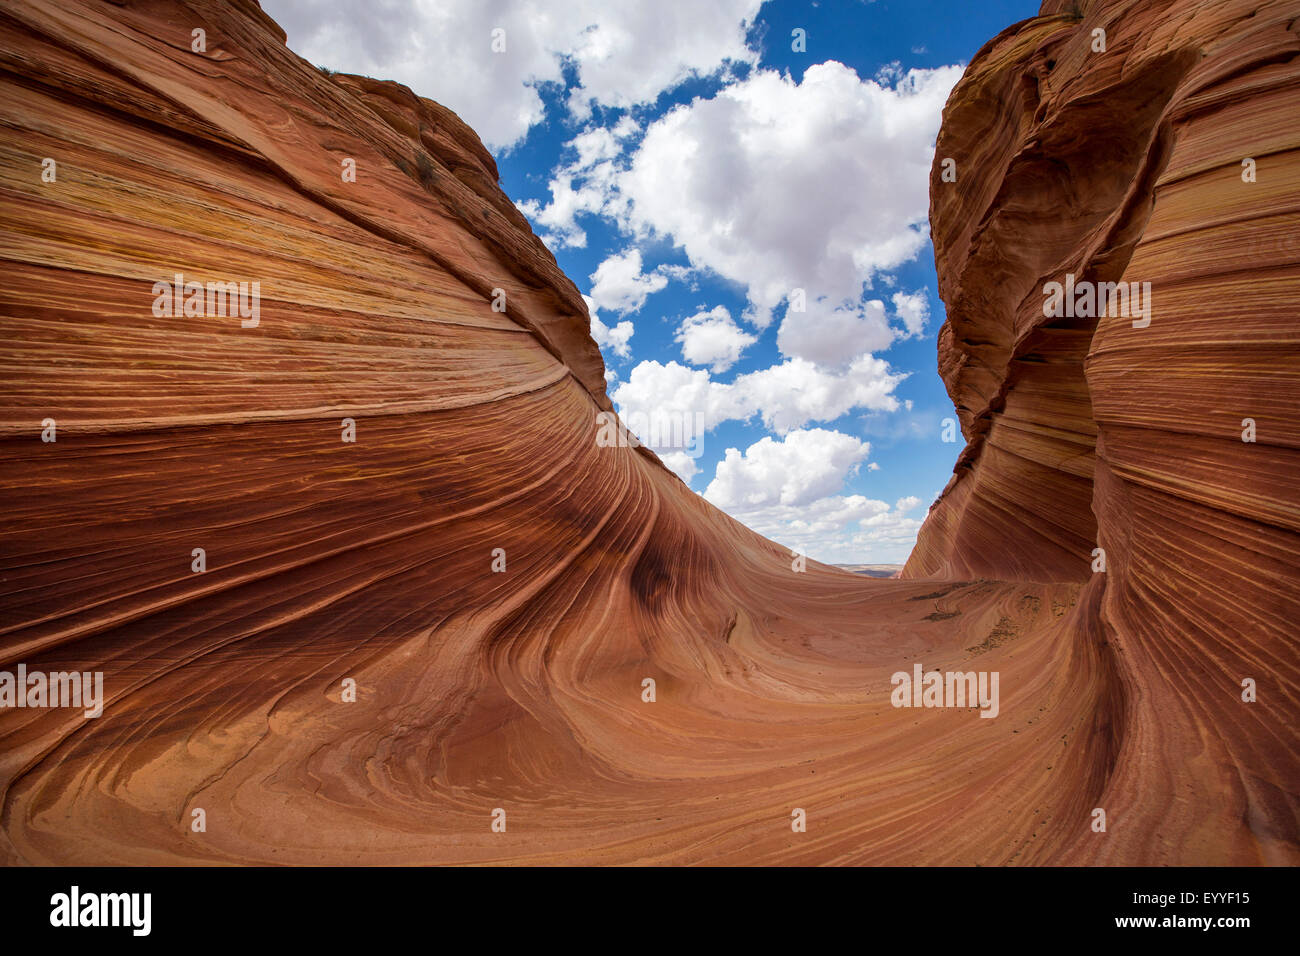 Grooves in desert rock formations, Coyote Buttes, North Coyote Buttes, United States Stock Photo